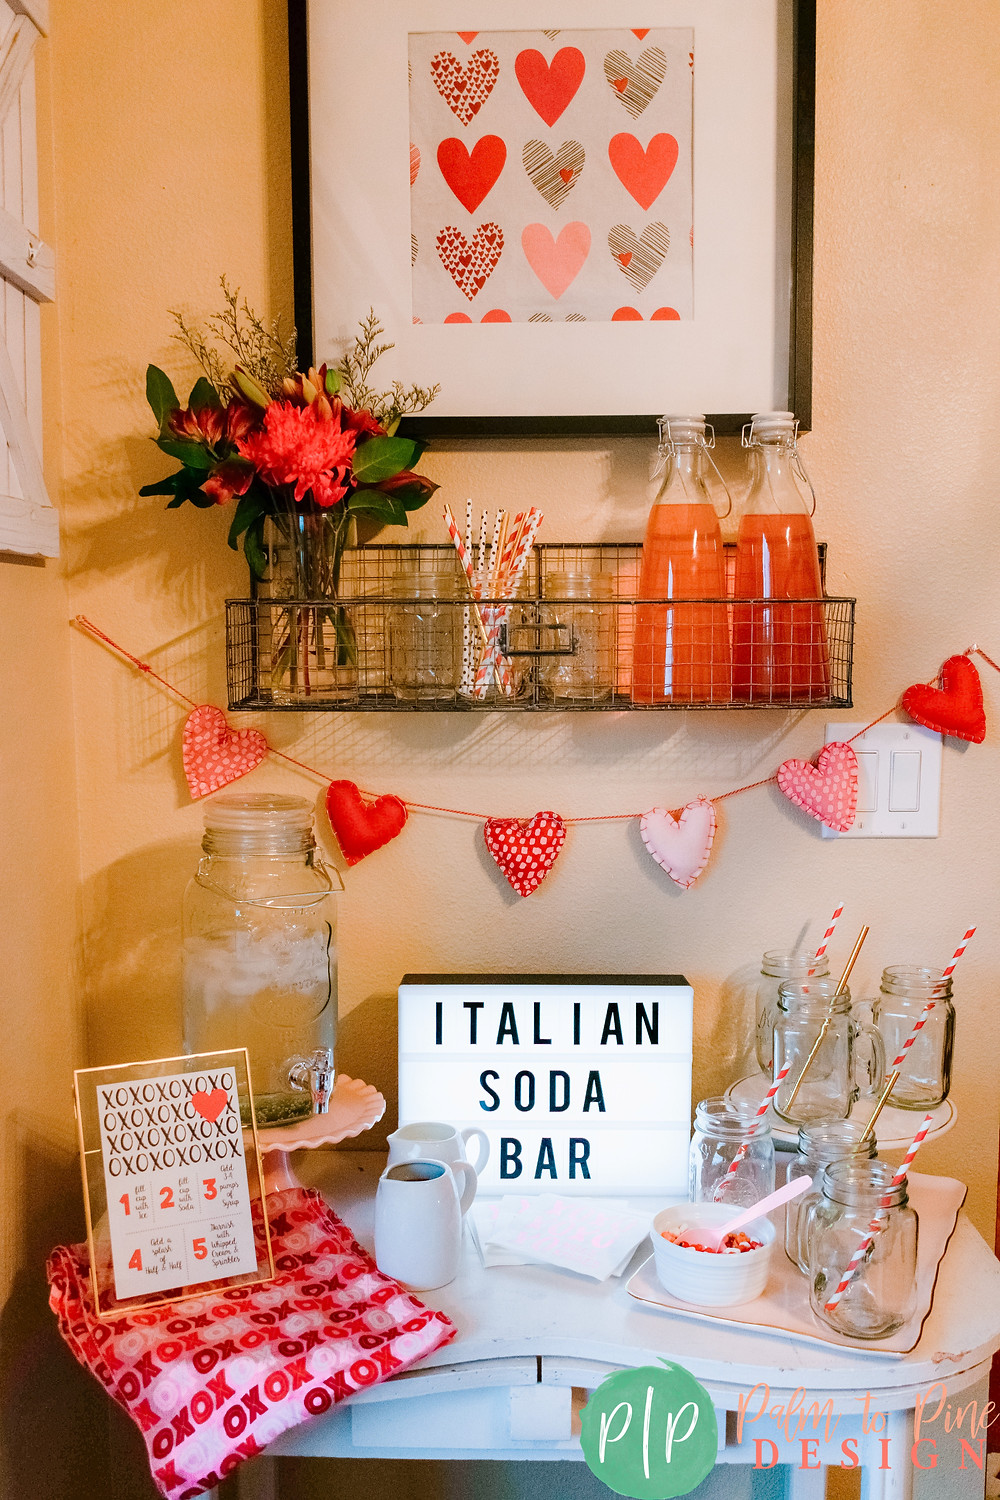 Italian Soda Bar for a Valentine's Party